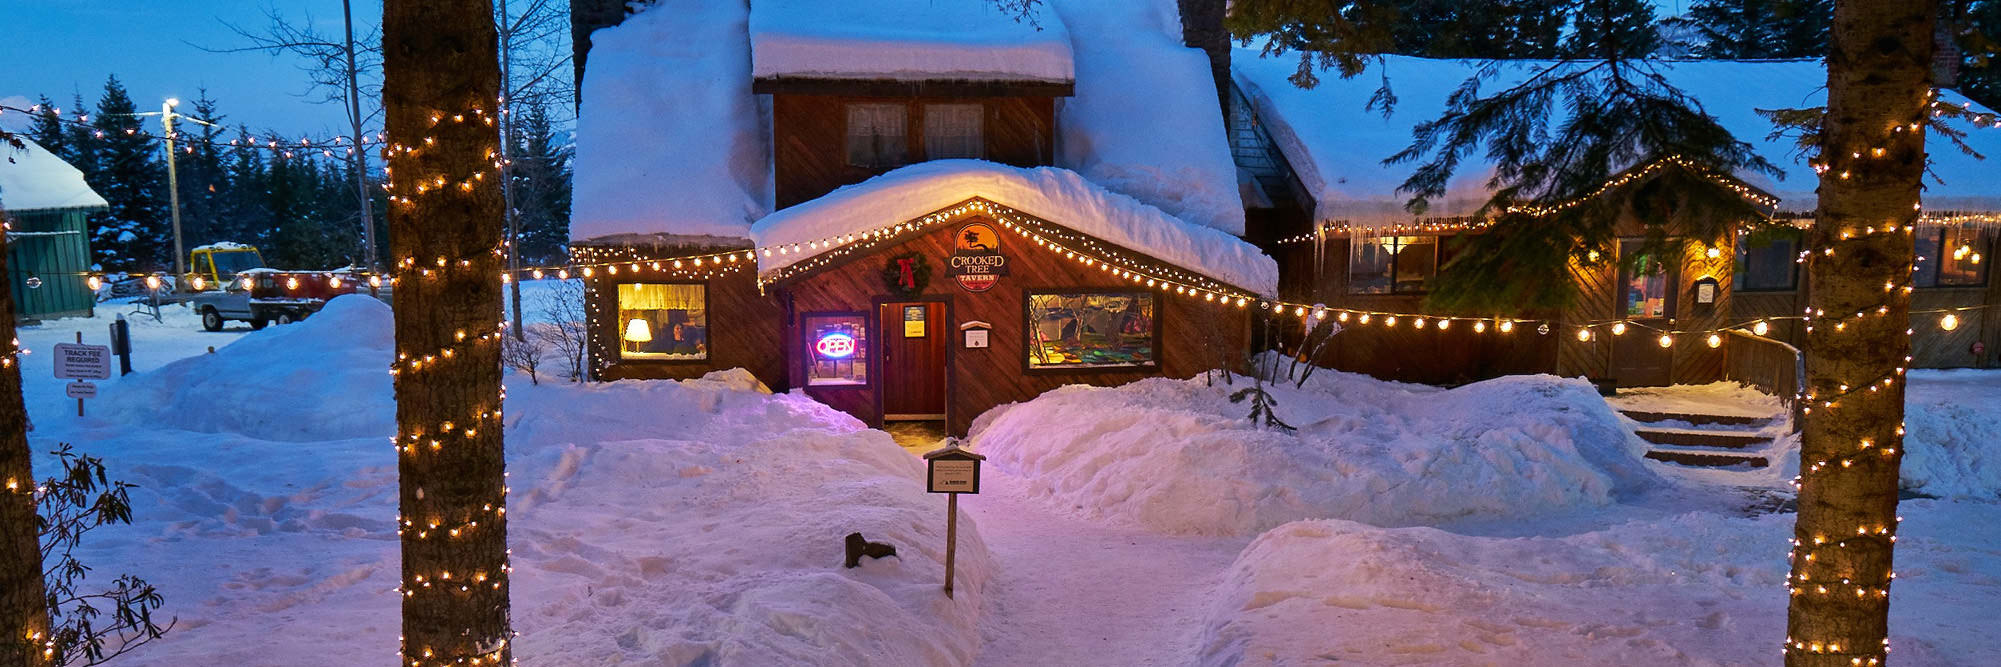 Top Things to Do in Oregon This Winter - Travel Oregon